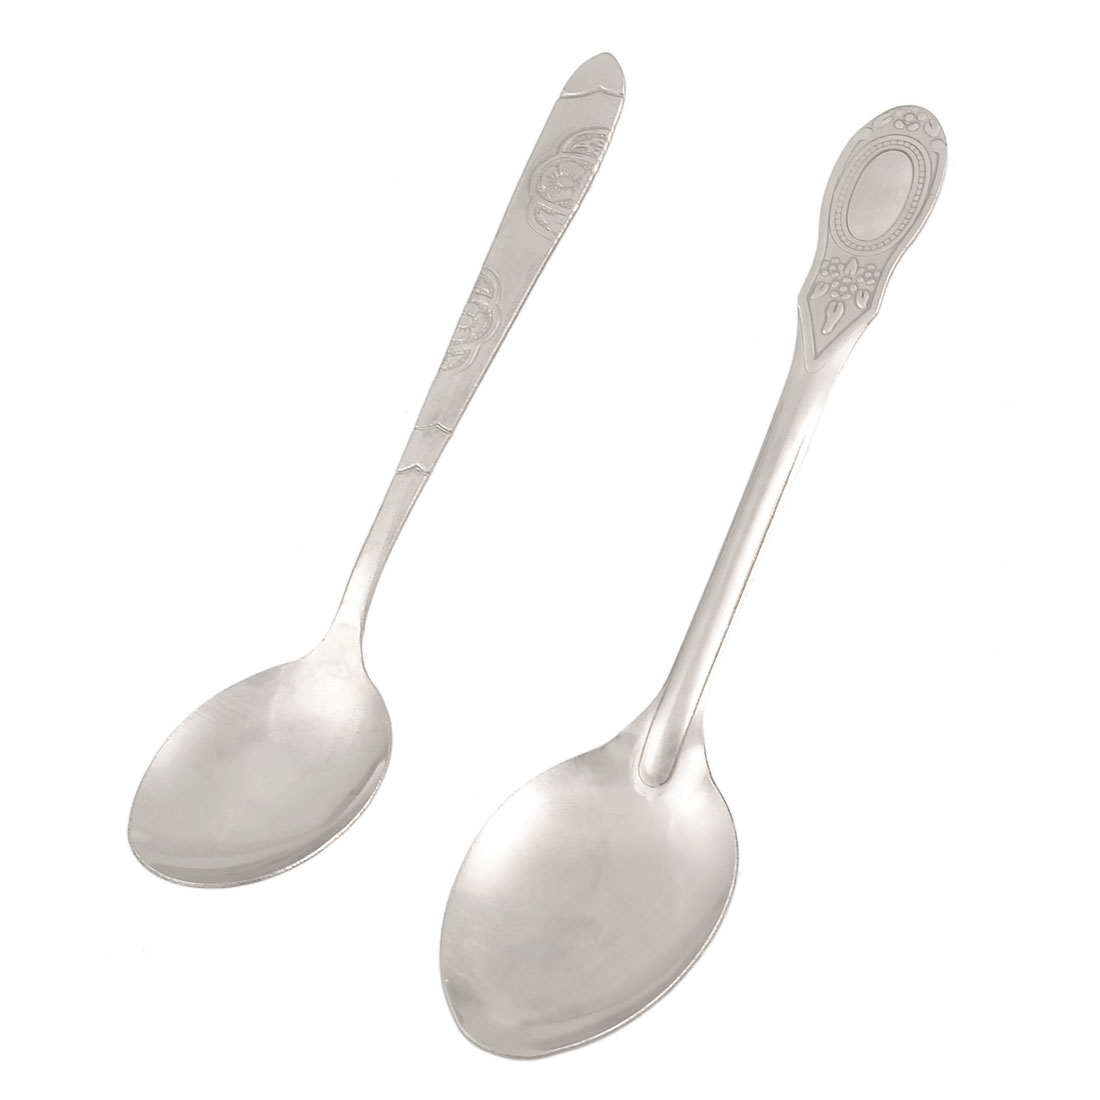 Camping Travel Silver Tone Metal Soup Spoons 2 Pcs